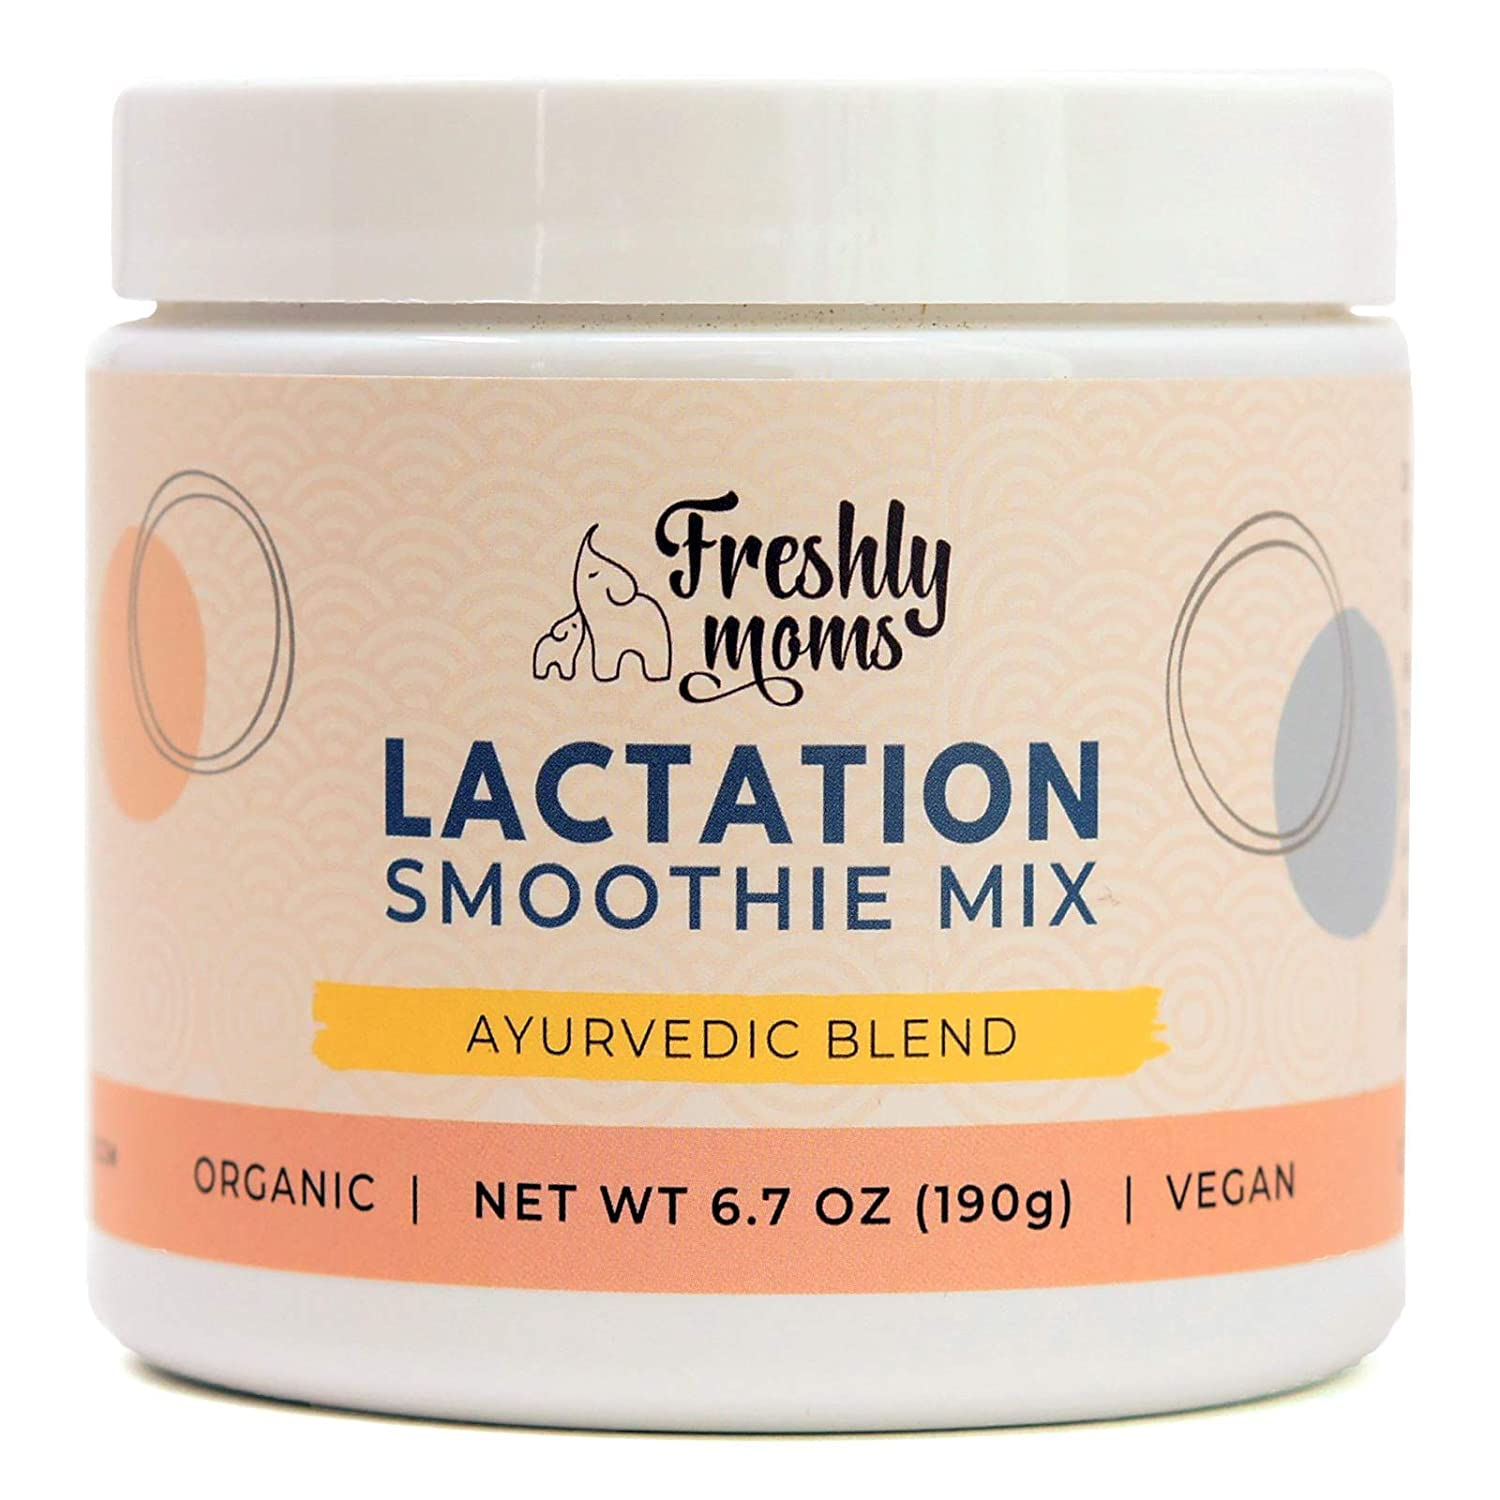 Organic Unflavored Lactation Smoothie Mix by Freshly Moms   Unsweetened, Vegan, Ayurvedic Blend, Supports Healthy Breastfeeding (Increase Milk Supply, Use in Smoothies & Recipes), 24 Servings